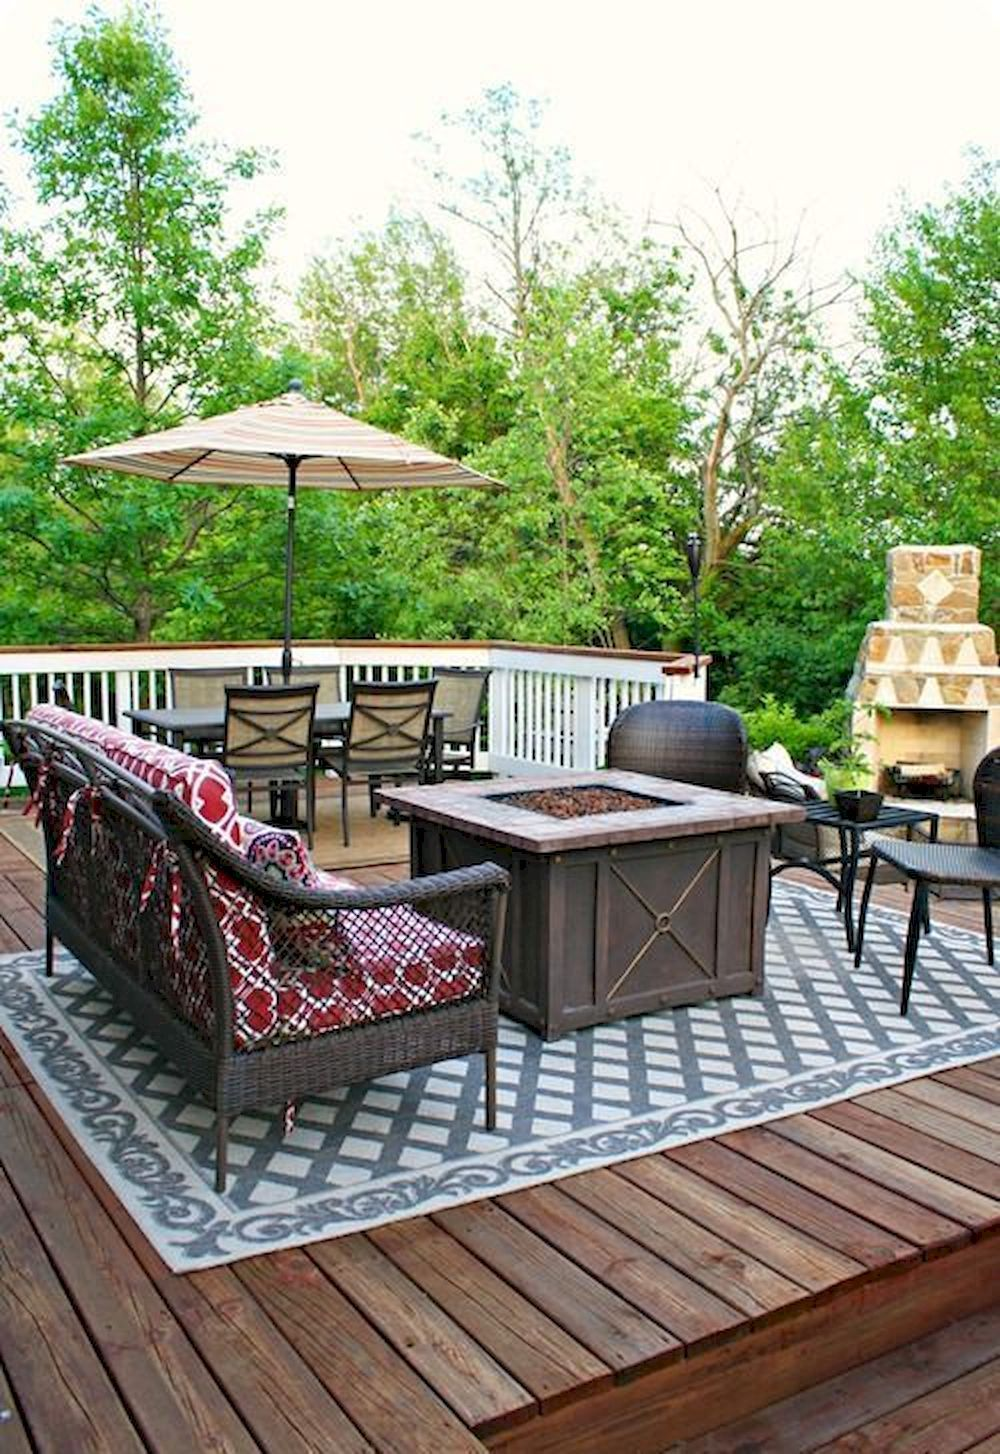 Sprucing Up Your Home With Outdoor Deck Furniture In 2020 Outdoor Deck Furniture Deck Furniture Arrangement Deck Furniture Layout